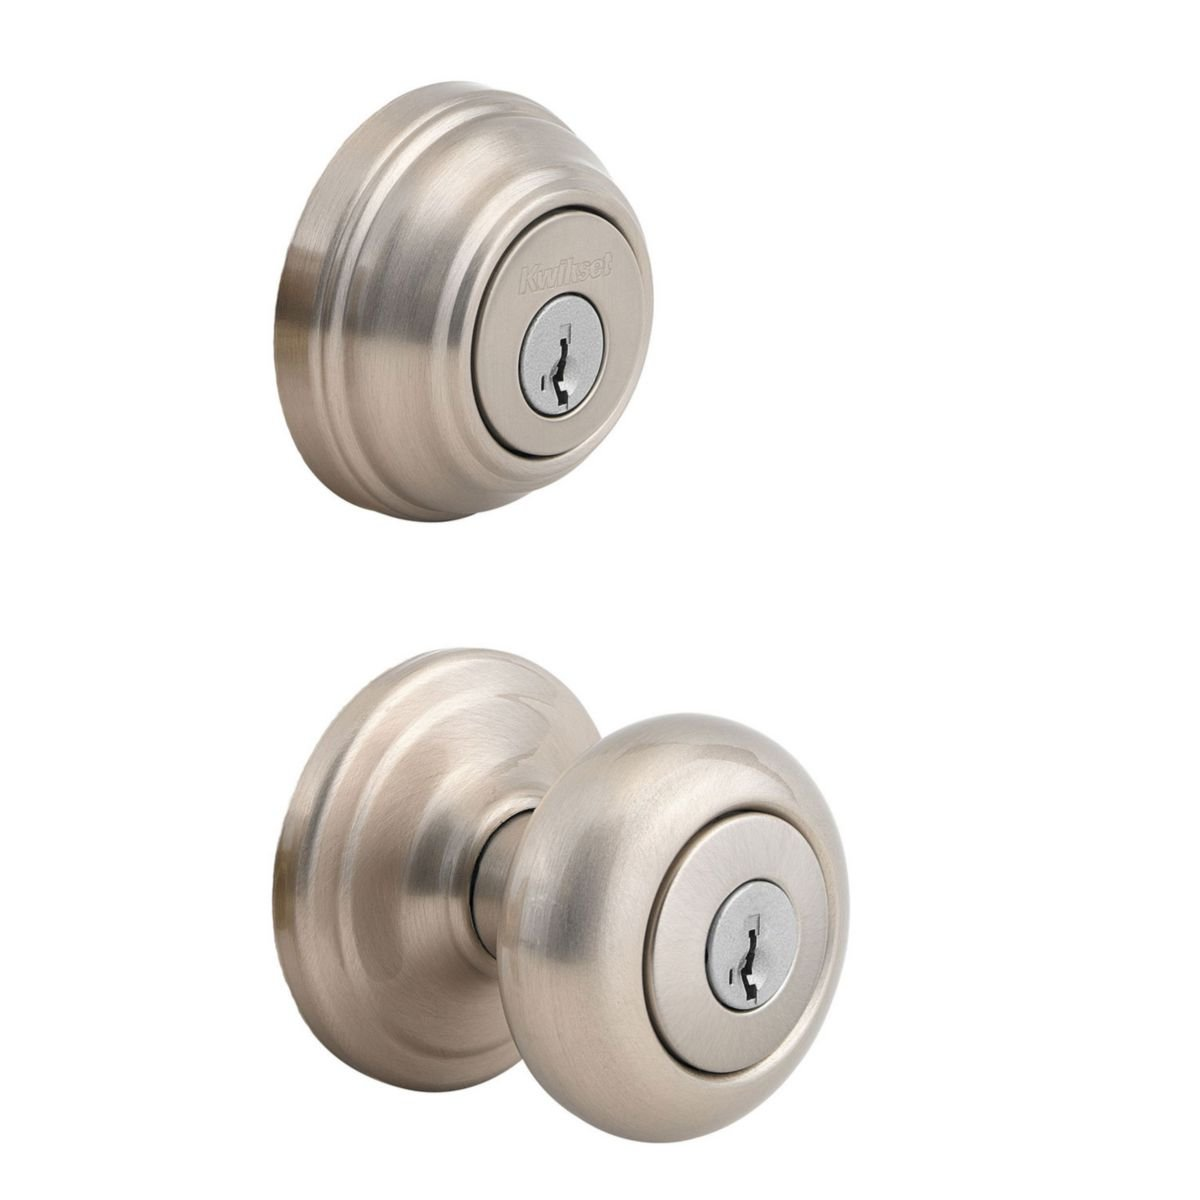 Kwikset 991 Juno Entry Knob and Single Cylinder Deadbolt Combo Pack featuring SmartKey® in Satin Nickel 99910-034